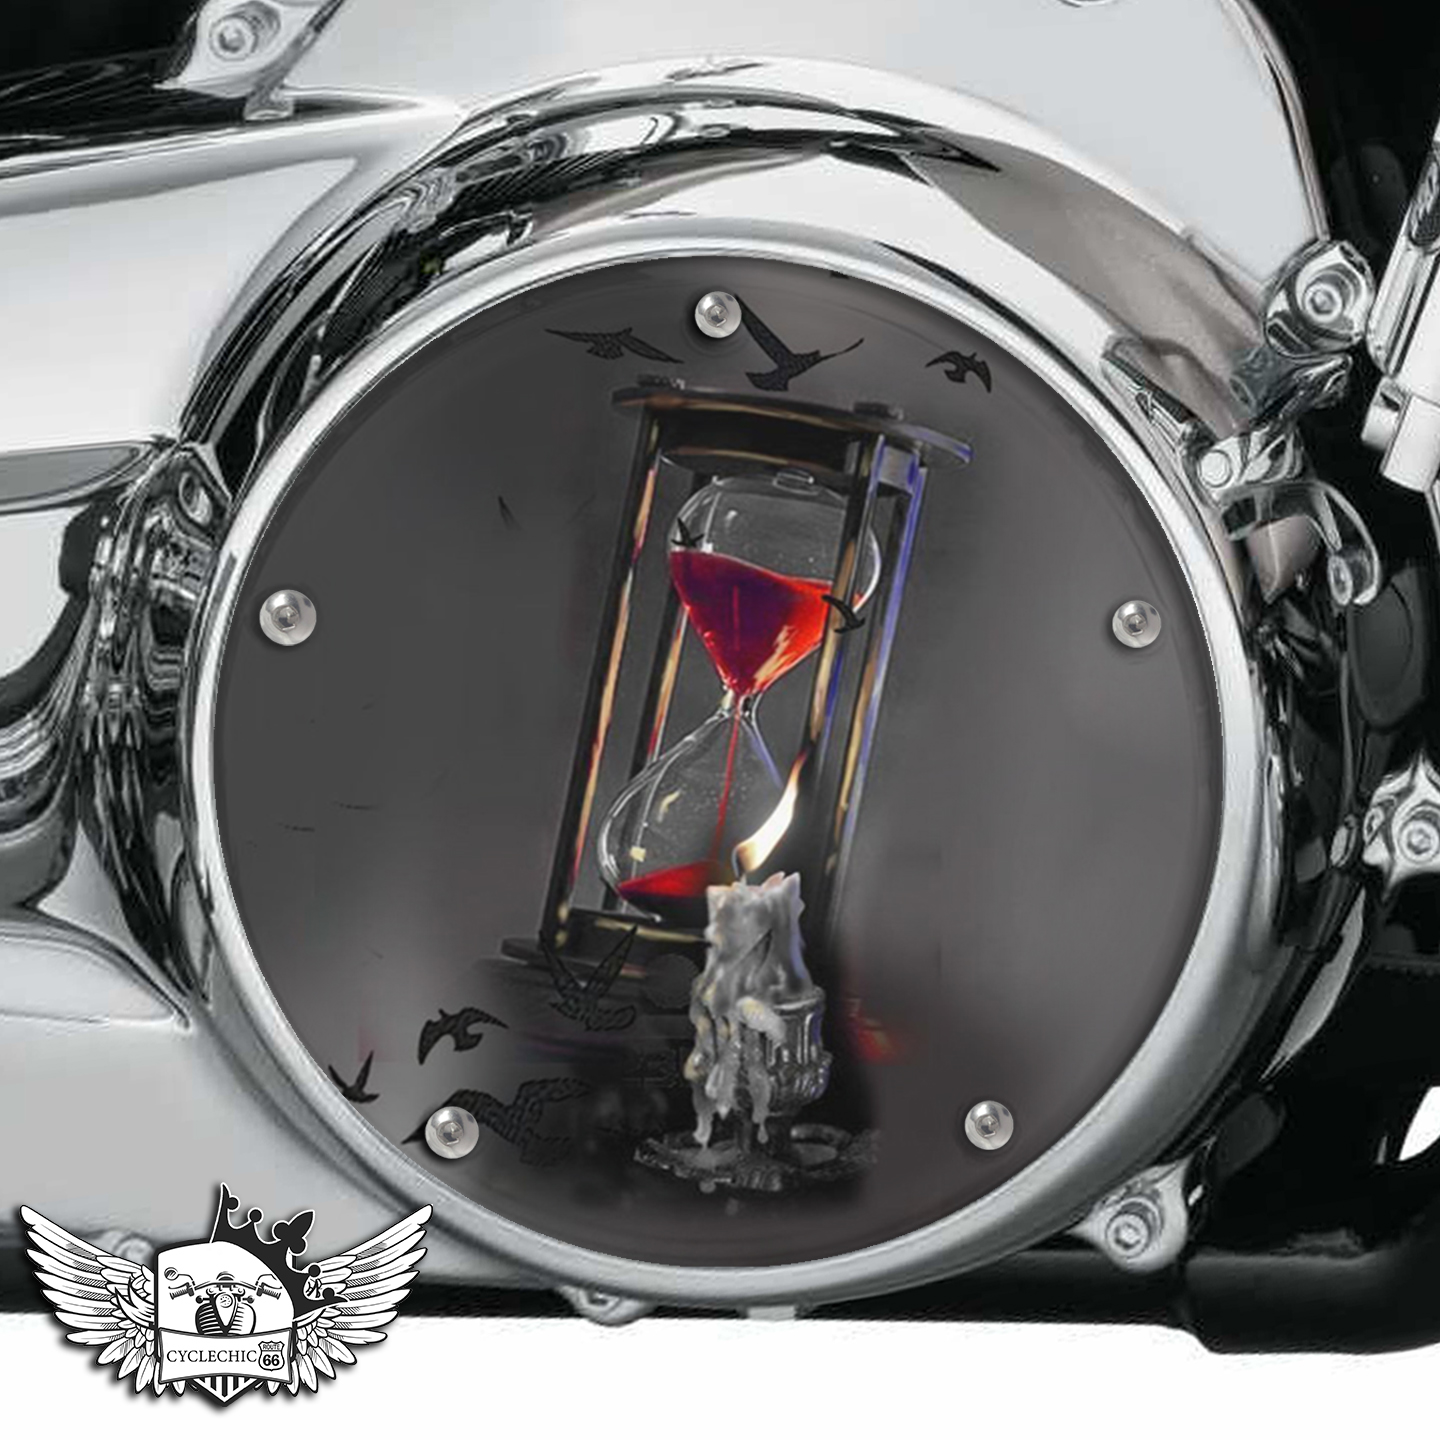 Harley Davidson Derby/Clutch Cover - Blood hourglass, time